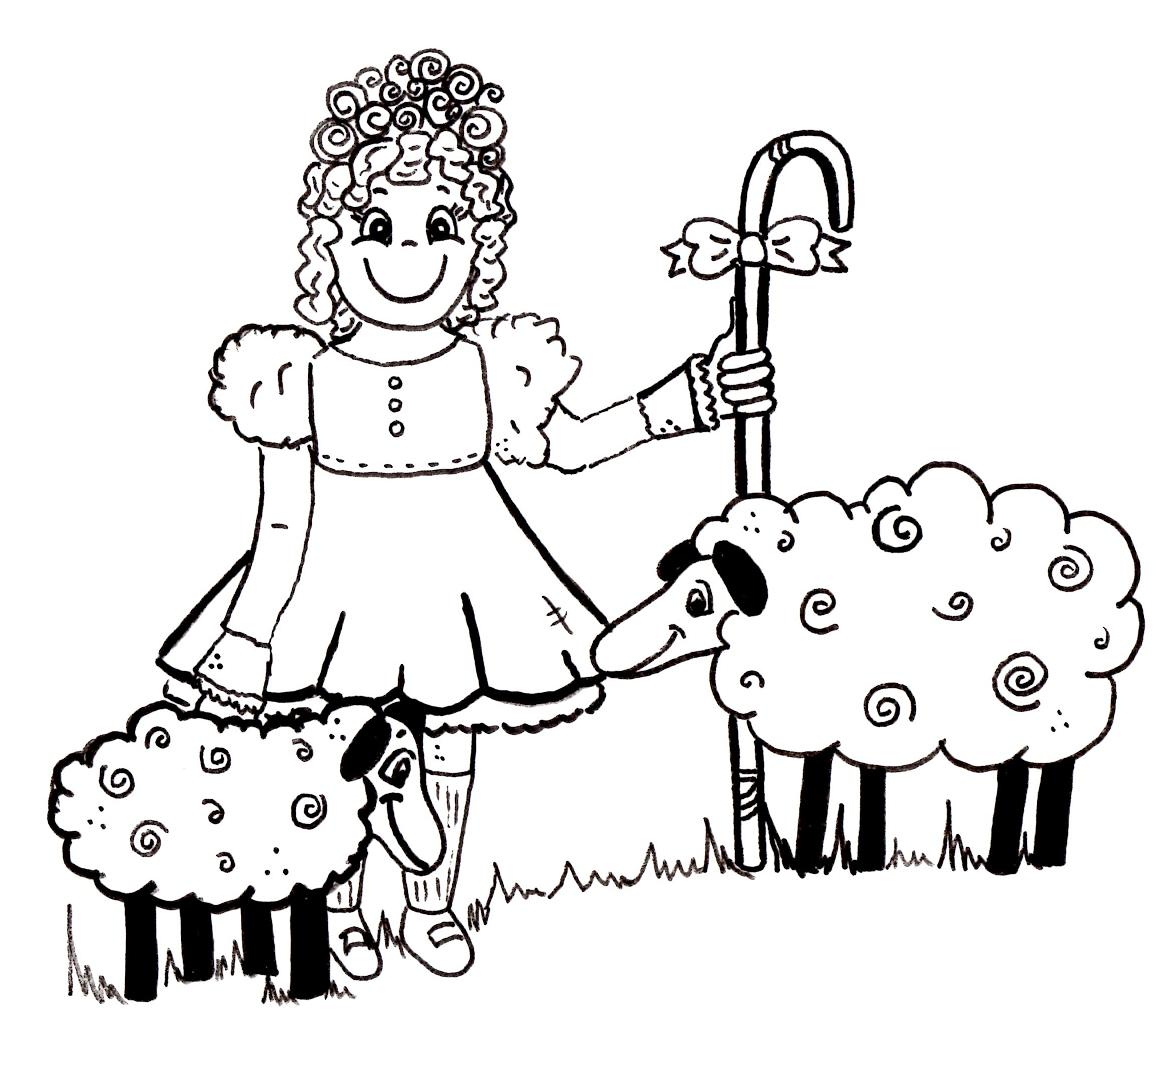 Little Bo Peep Cartoon coloring Pages